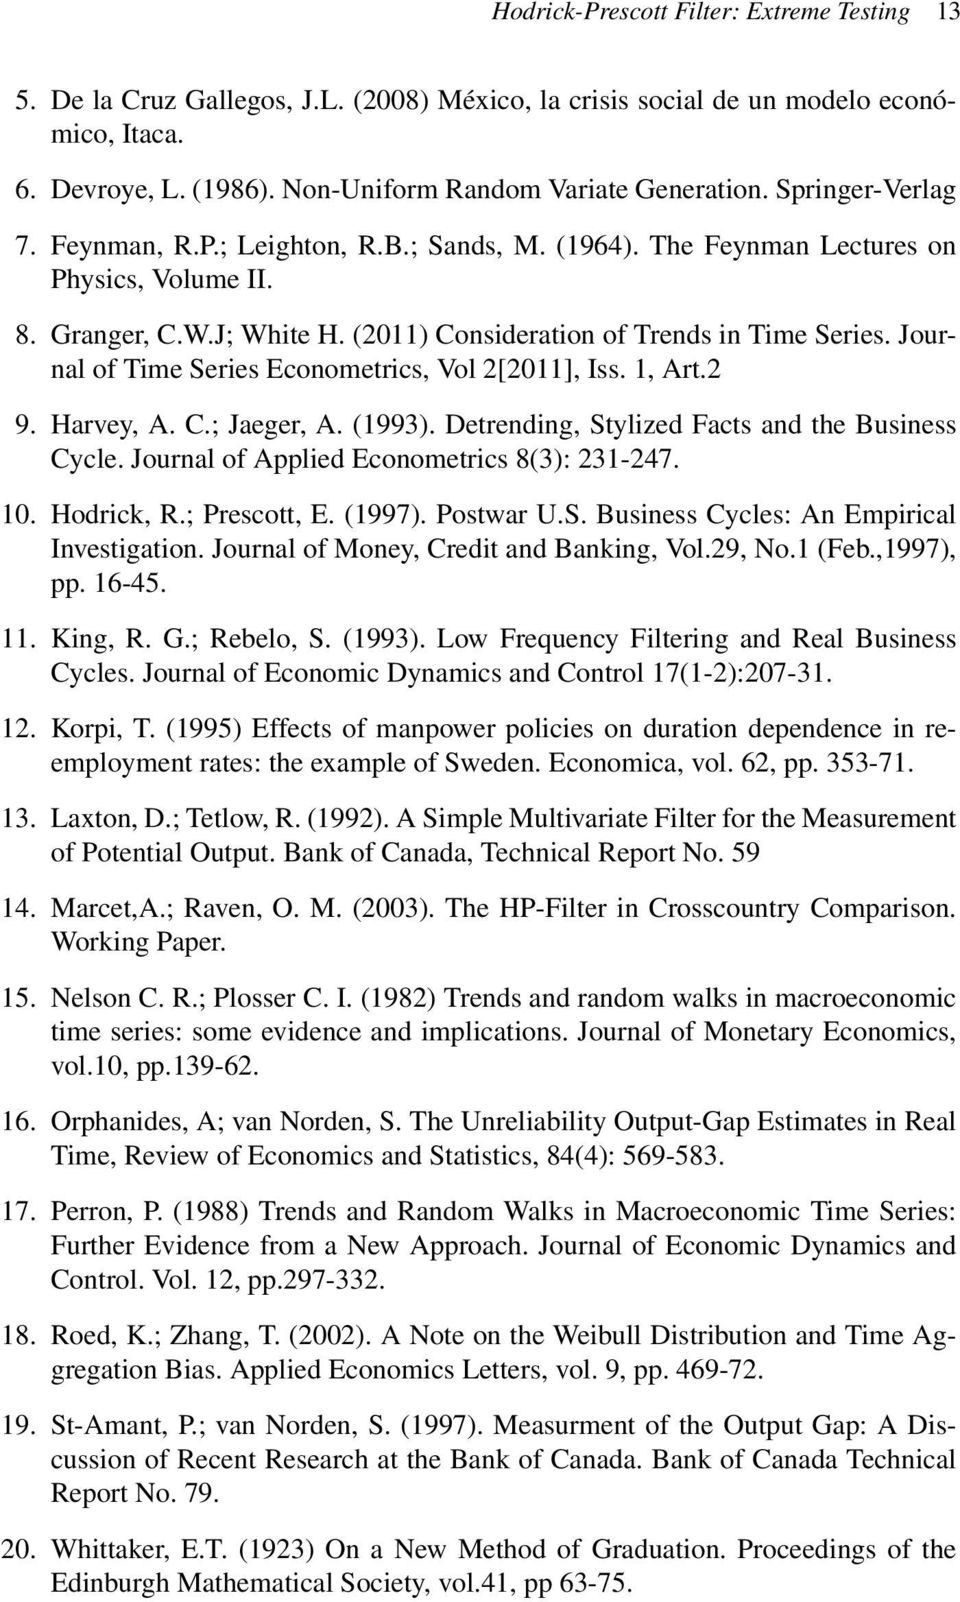 Journal of Time Series Econometrics, Vol 2[2011], Iss. 1, Art.2 9. Harvey, A. C.; Jaeger, A. (1993). Detrending, Stylized Facts and the Business Cycle. Journal of Applied Econometrics 8(3): 231-247.